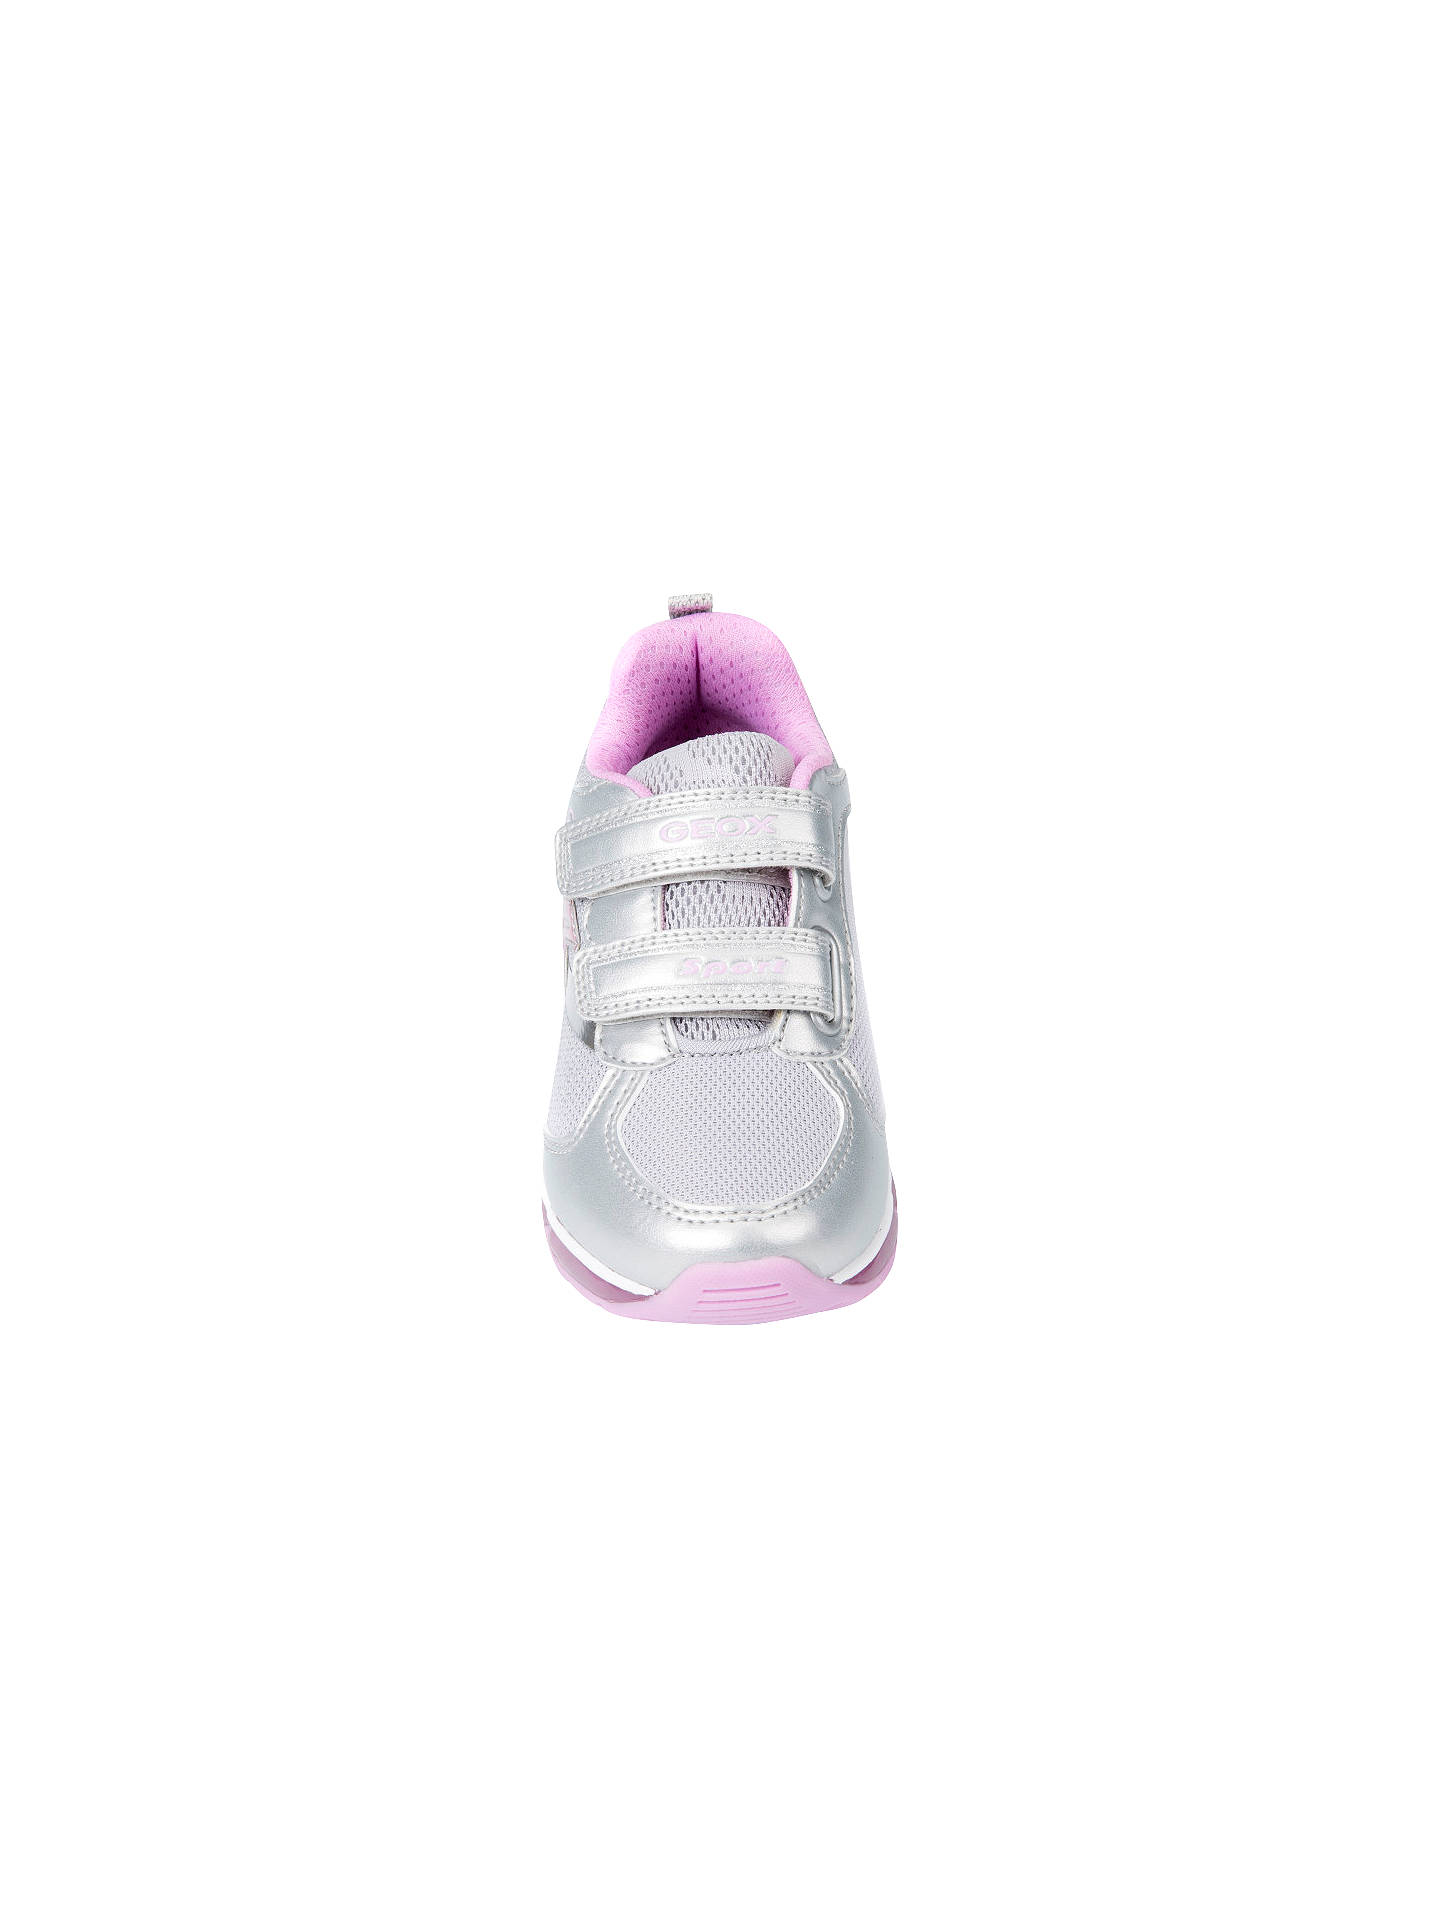 Geox Children's J Android Riptape Trainers, Silver at John